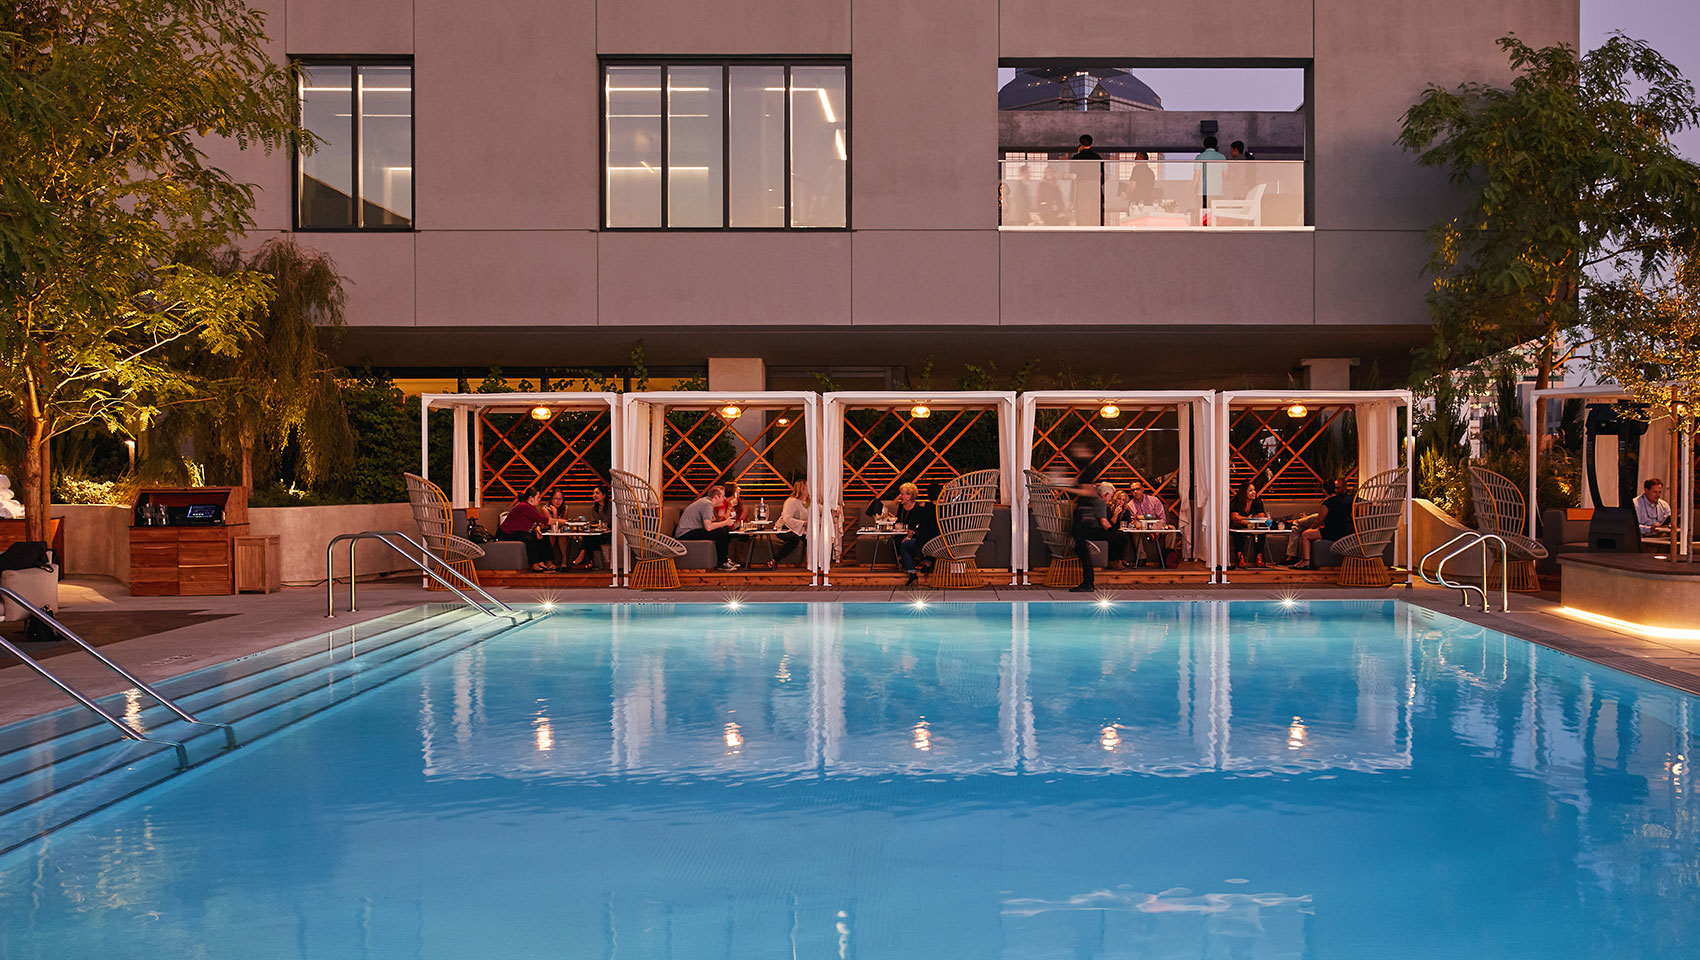 Kimpton Sawwyer Hotel pool